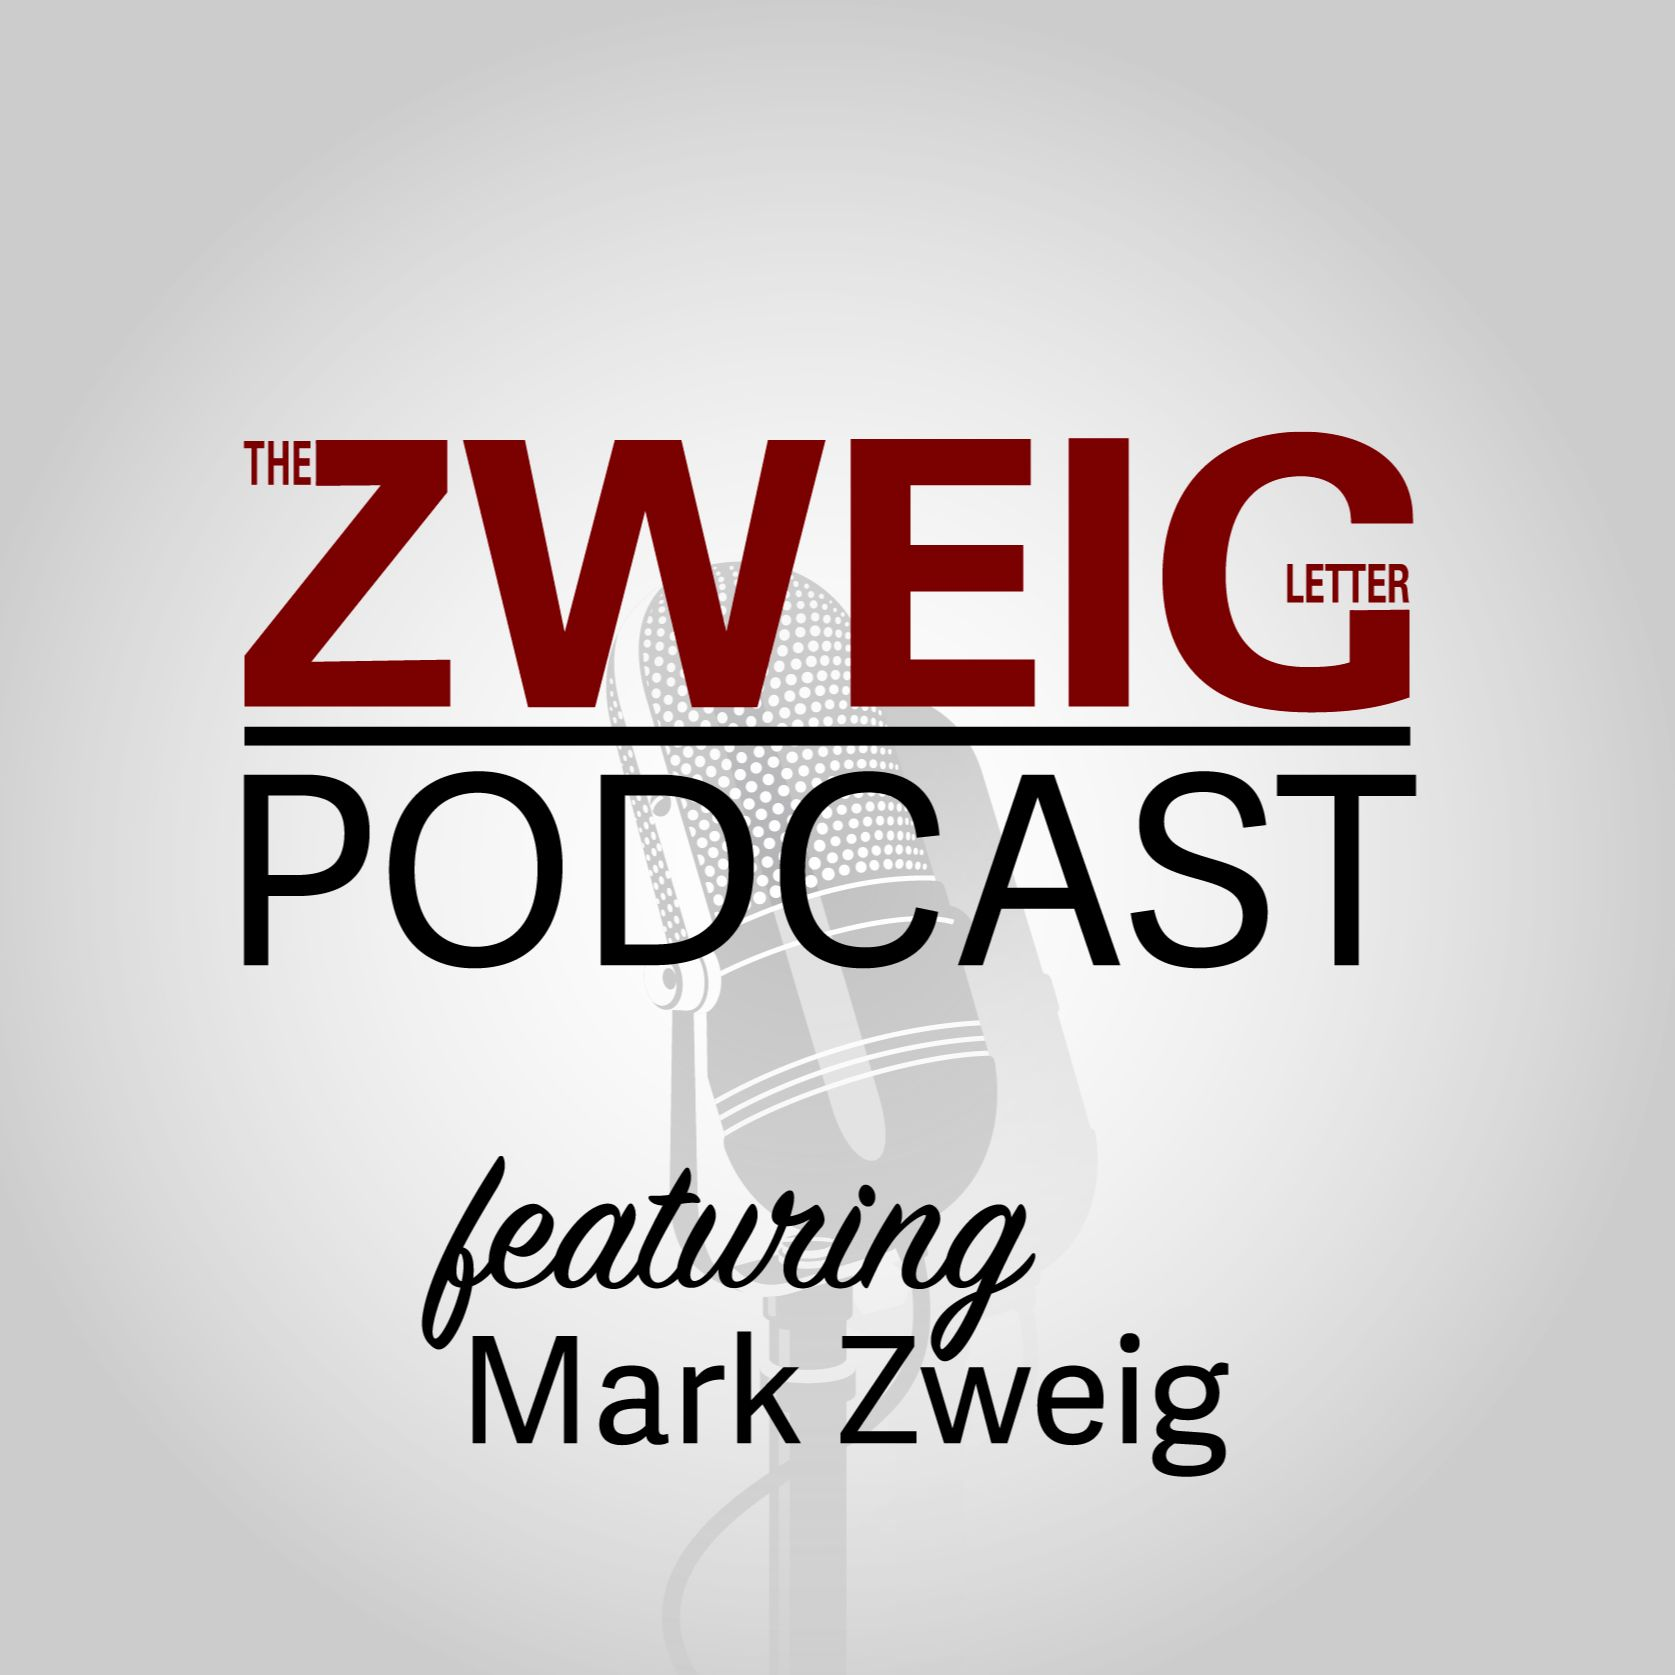 The Zweig Letter Podcasts